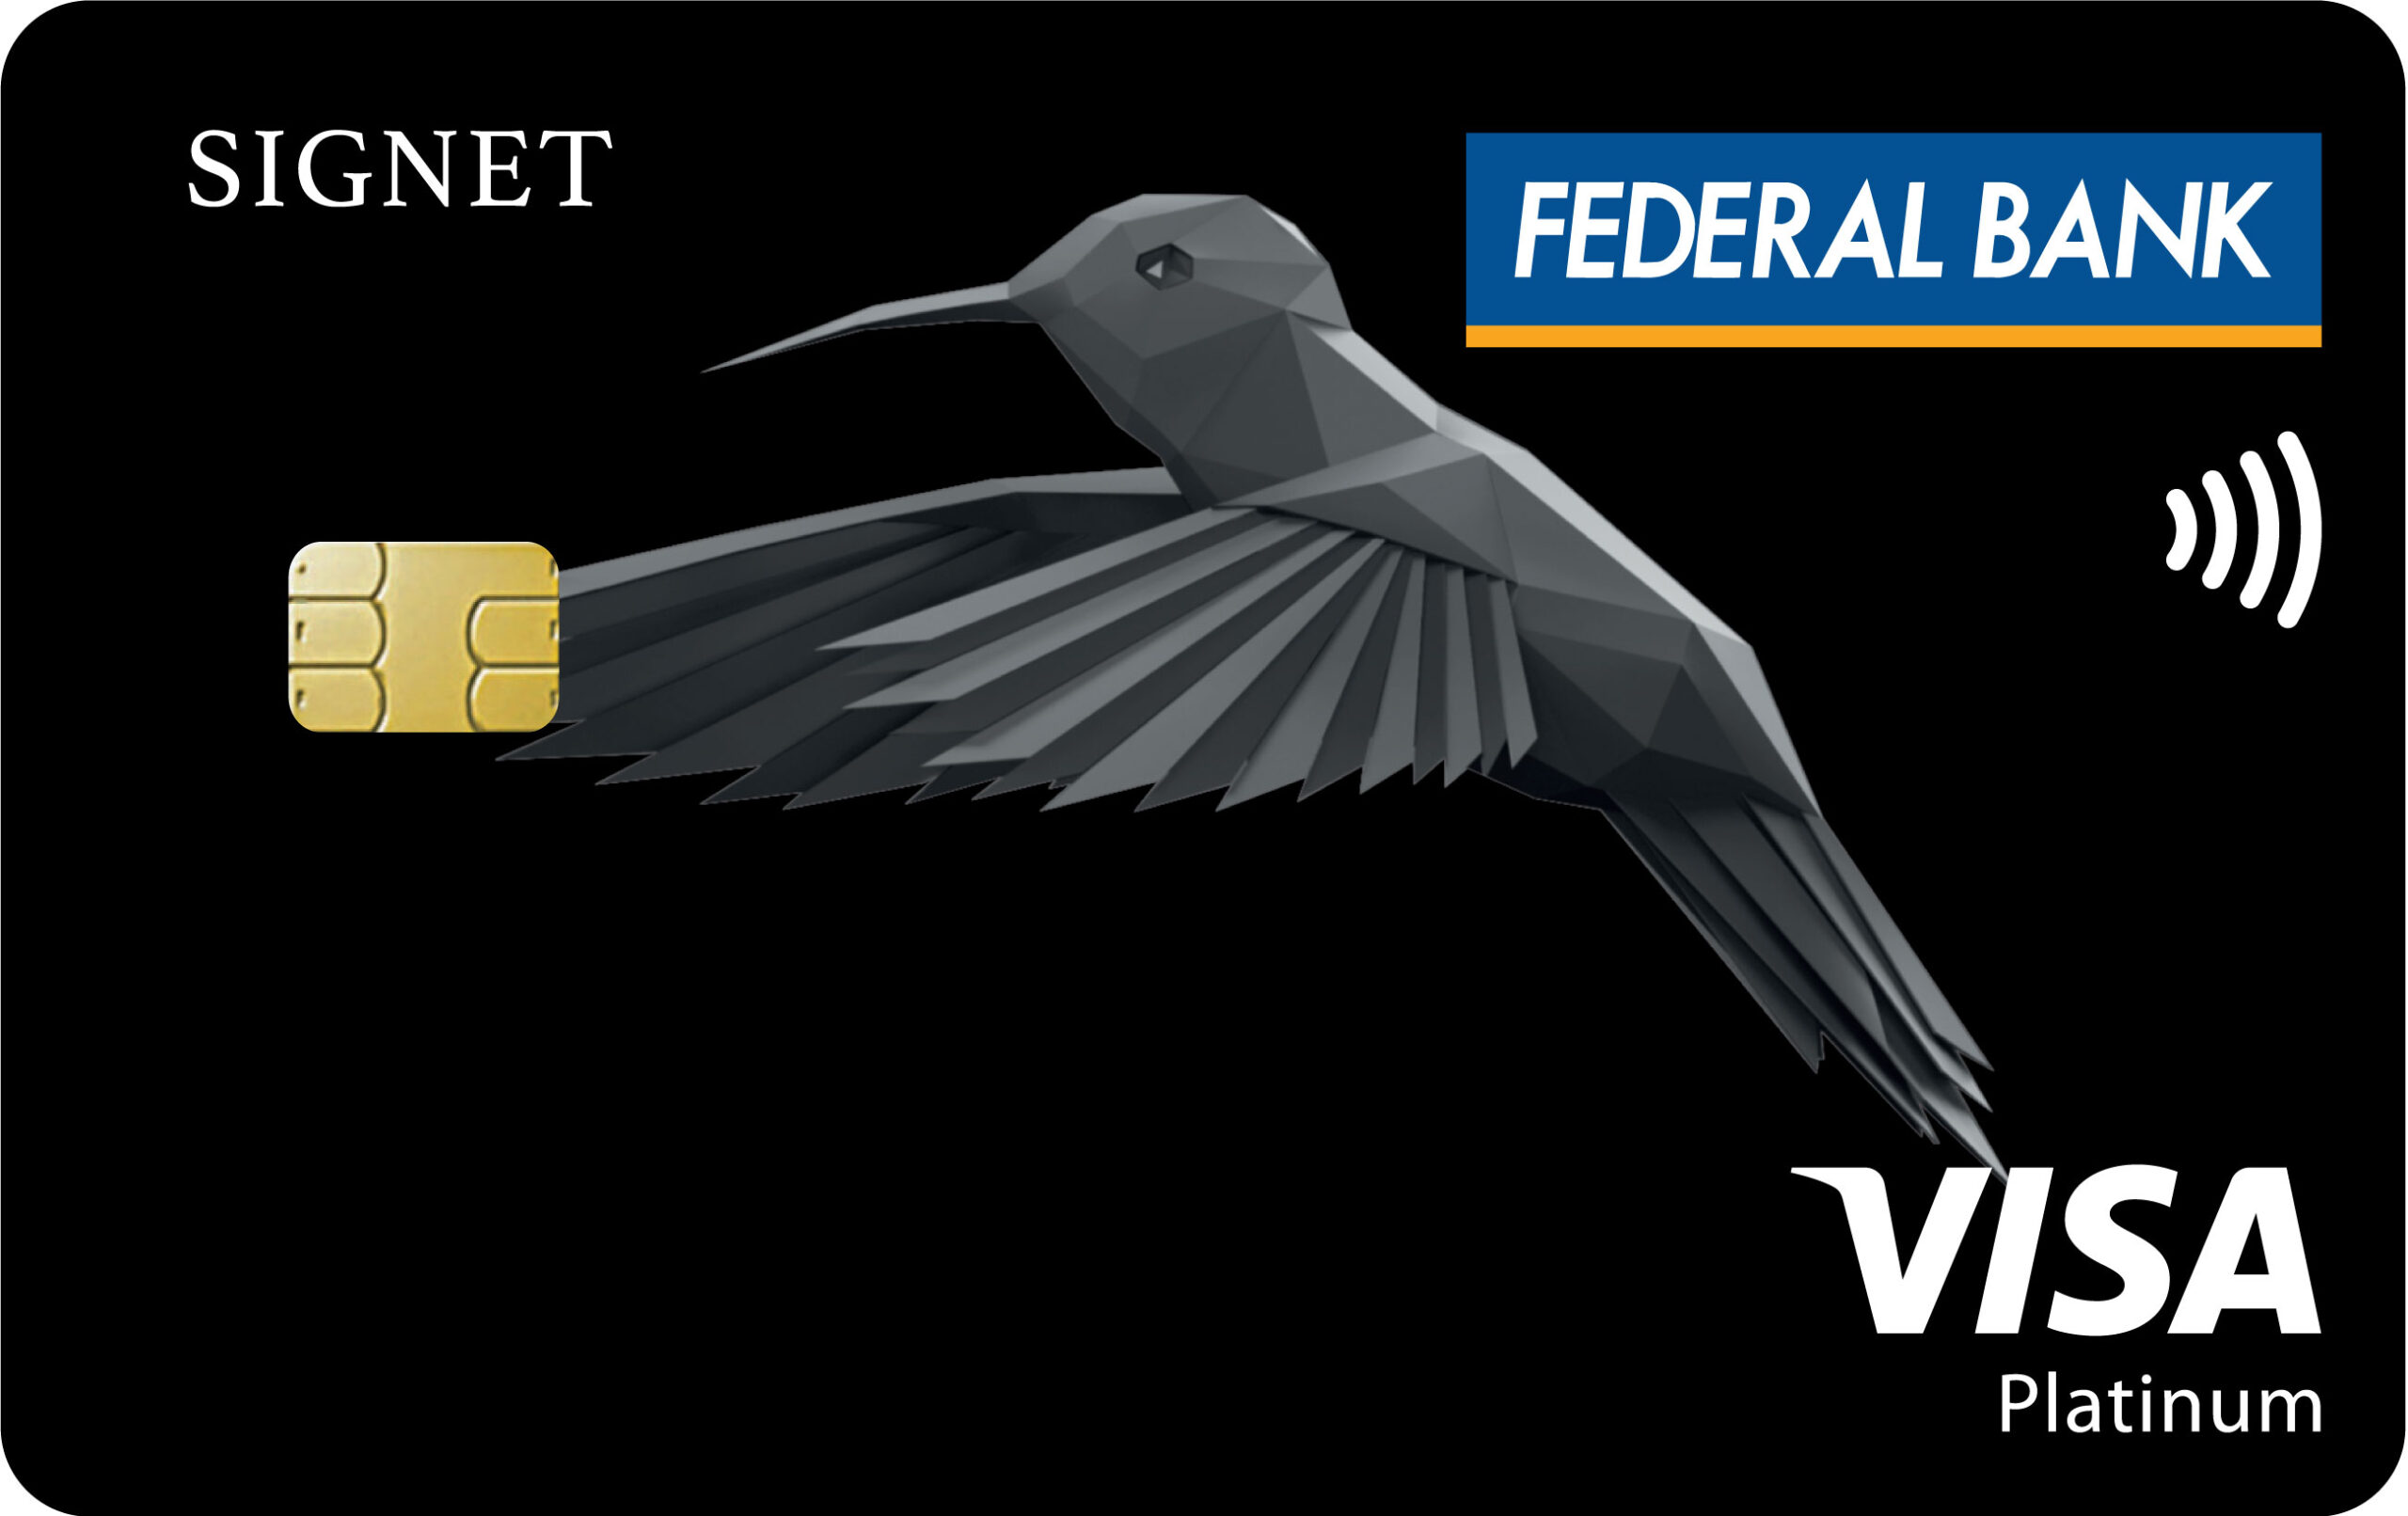 Federal Bank Launches Credit Cards in association with Visa